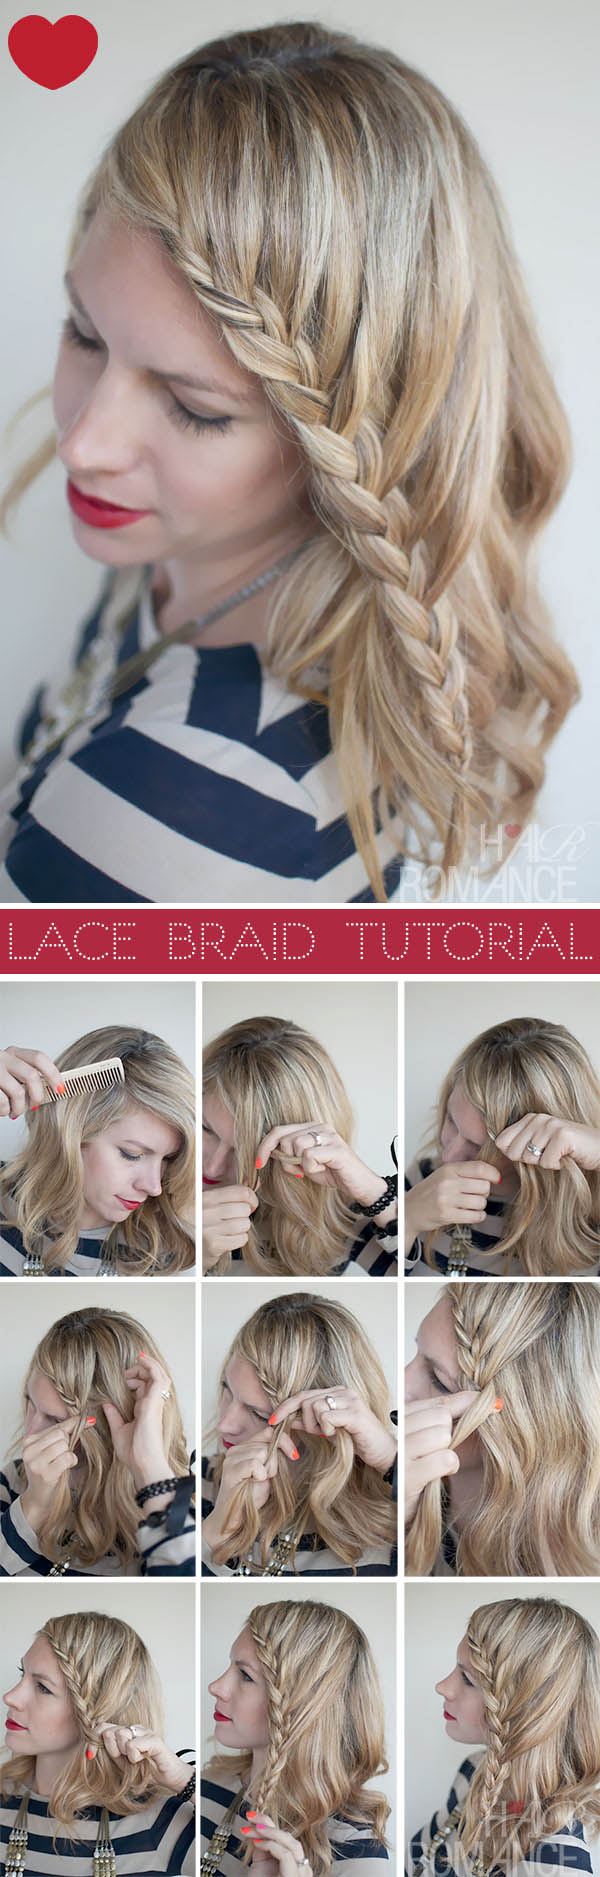 Surprising 20 Most Beautiful Braided Hairstyle Tutorials For 2014 Pretty Short Hairstyles Gunalazisus